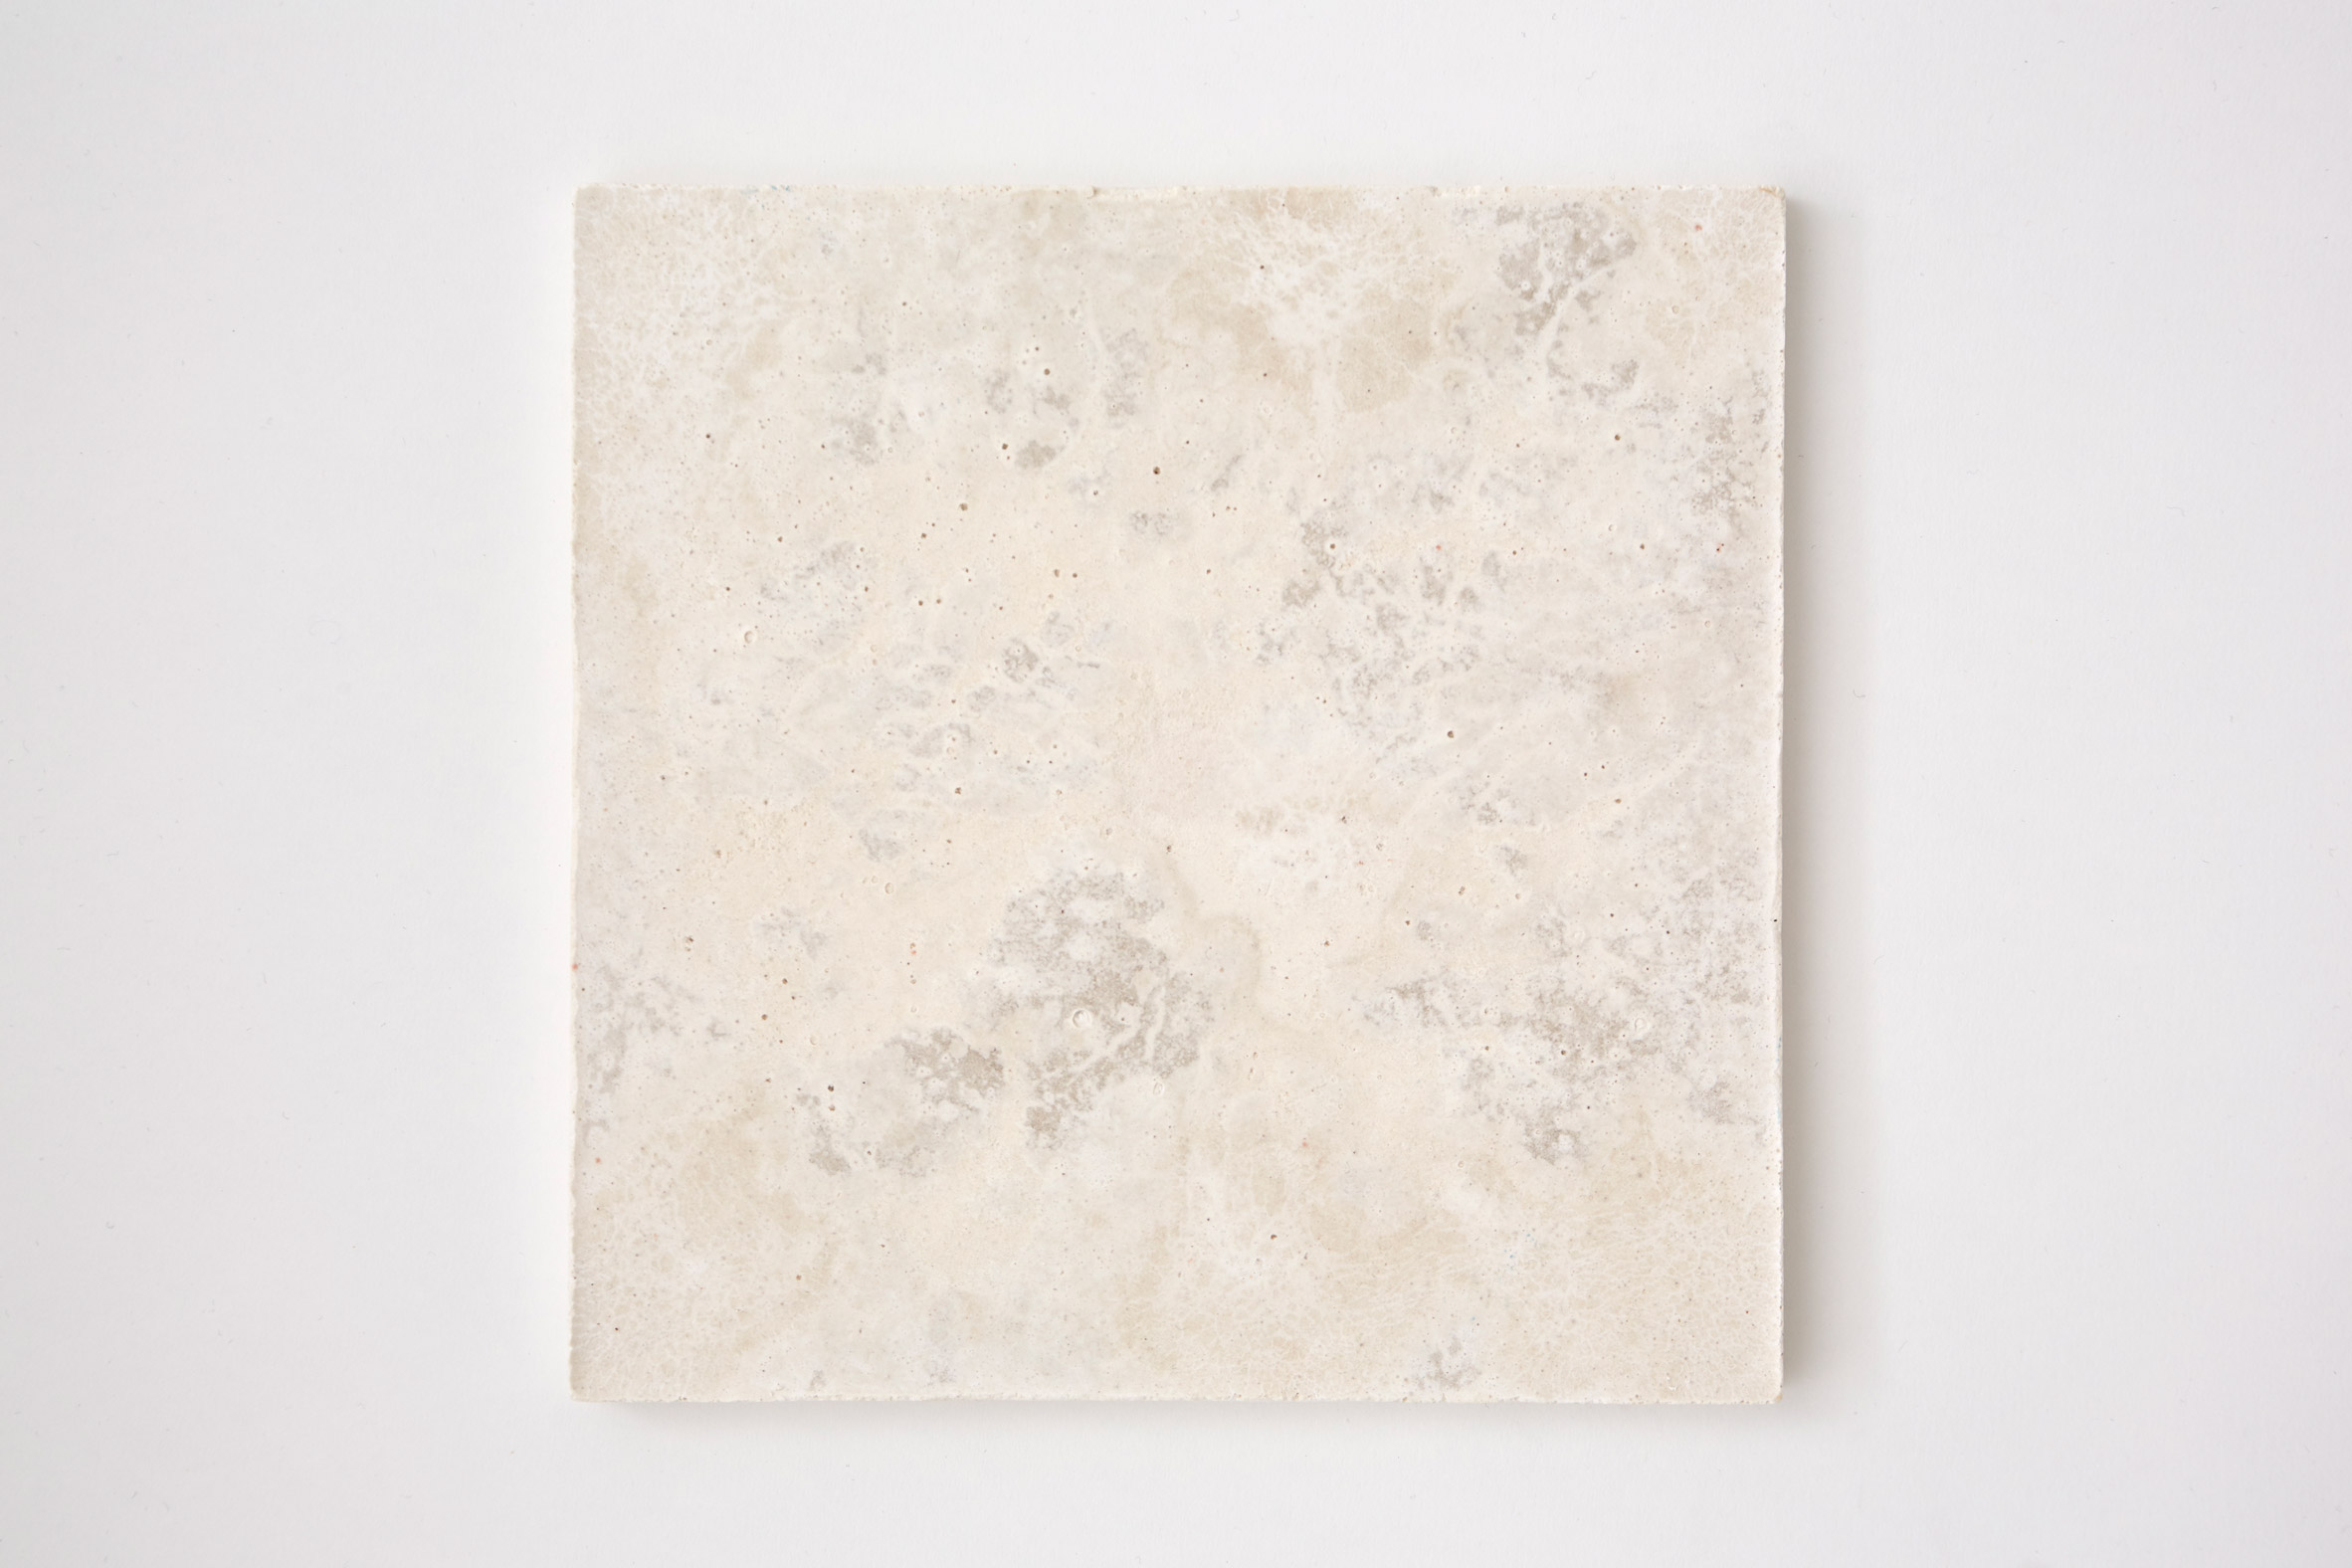 White marbled tile made from bio-concrete by Irene Roca Moracia and Brigitte Kock